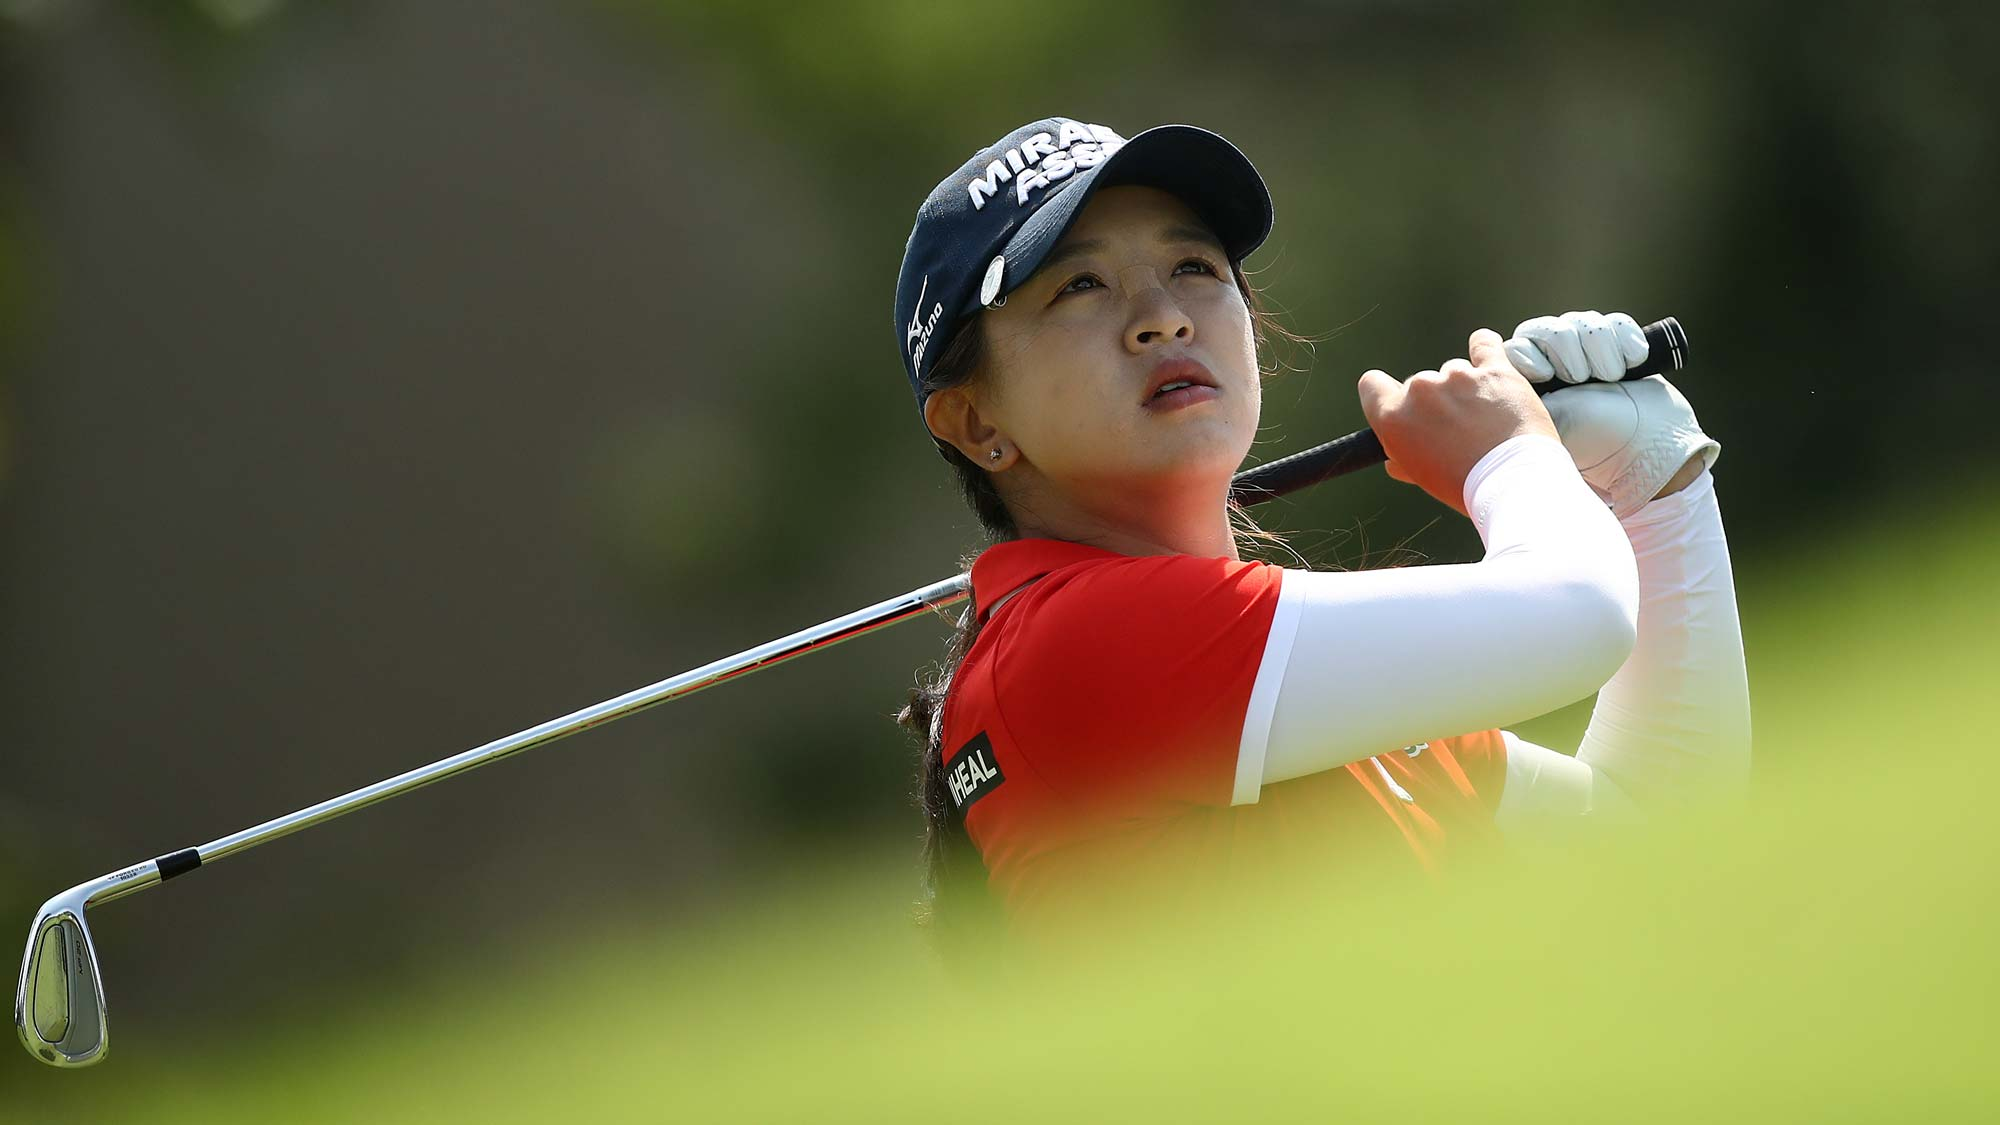 Sei Young Kim of Korea tees off on the third hole during round two of the LPGA Walmart NW Arkansas Championship